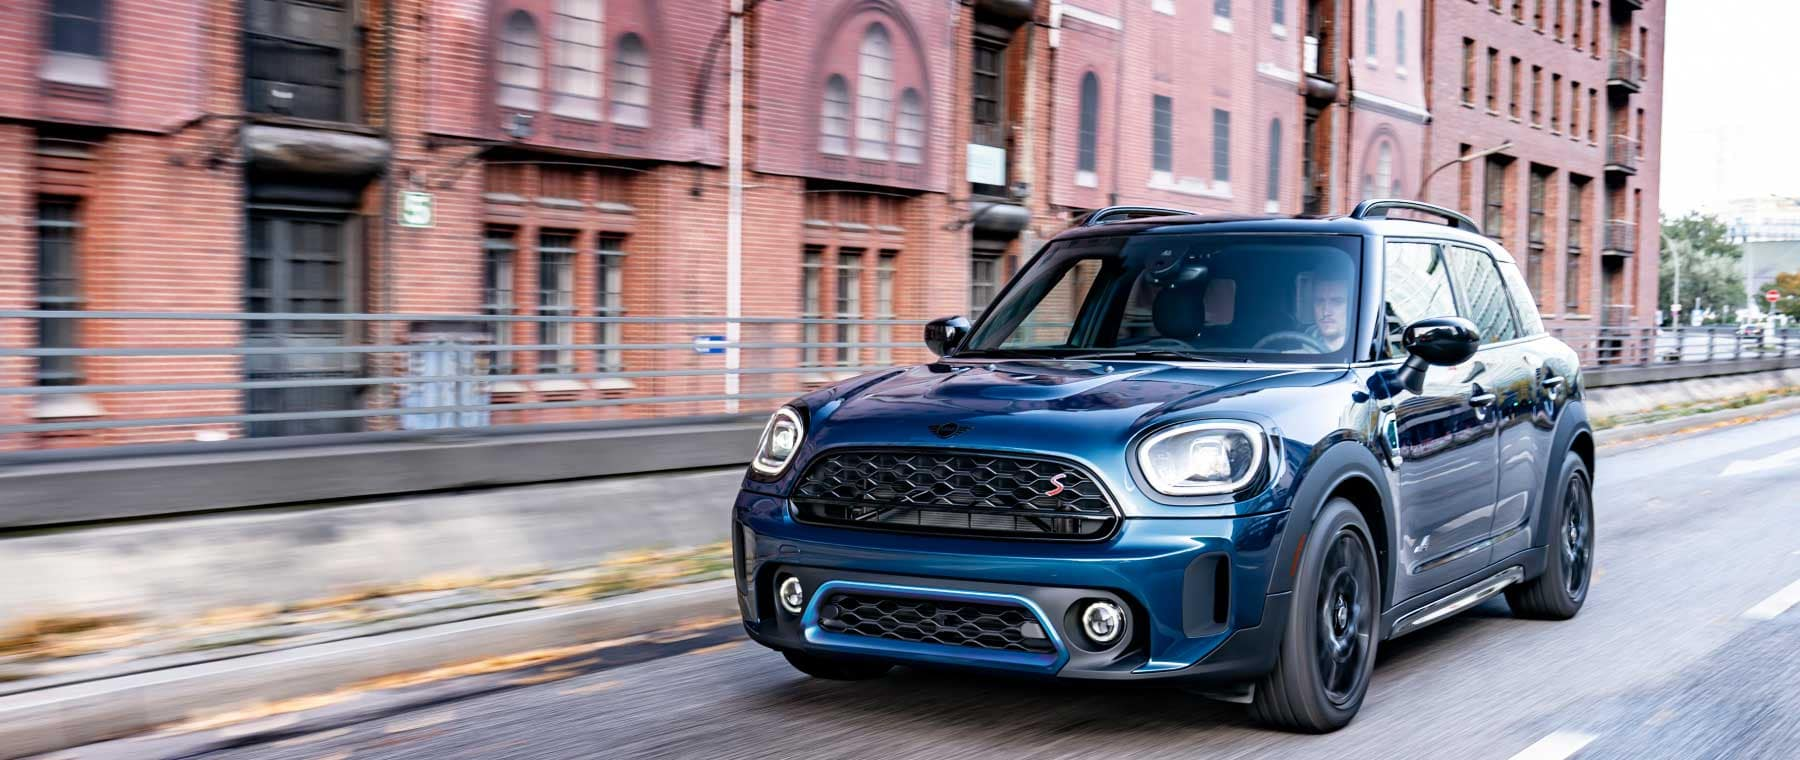 Image shows a man driving a Boardwalk Edition 2022 Countryman down the road in an urban city.